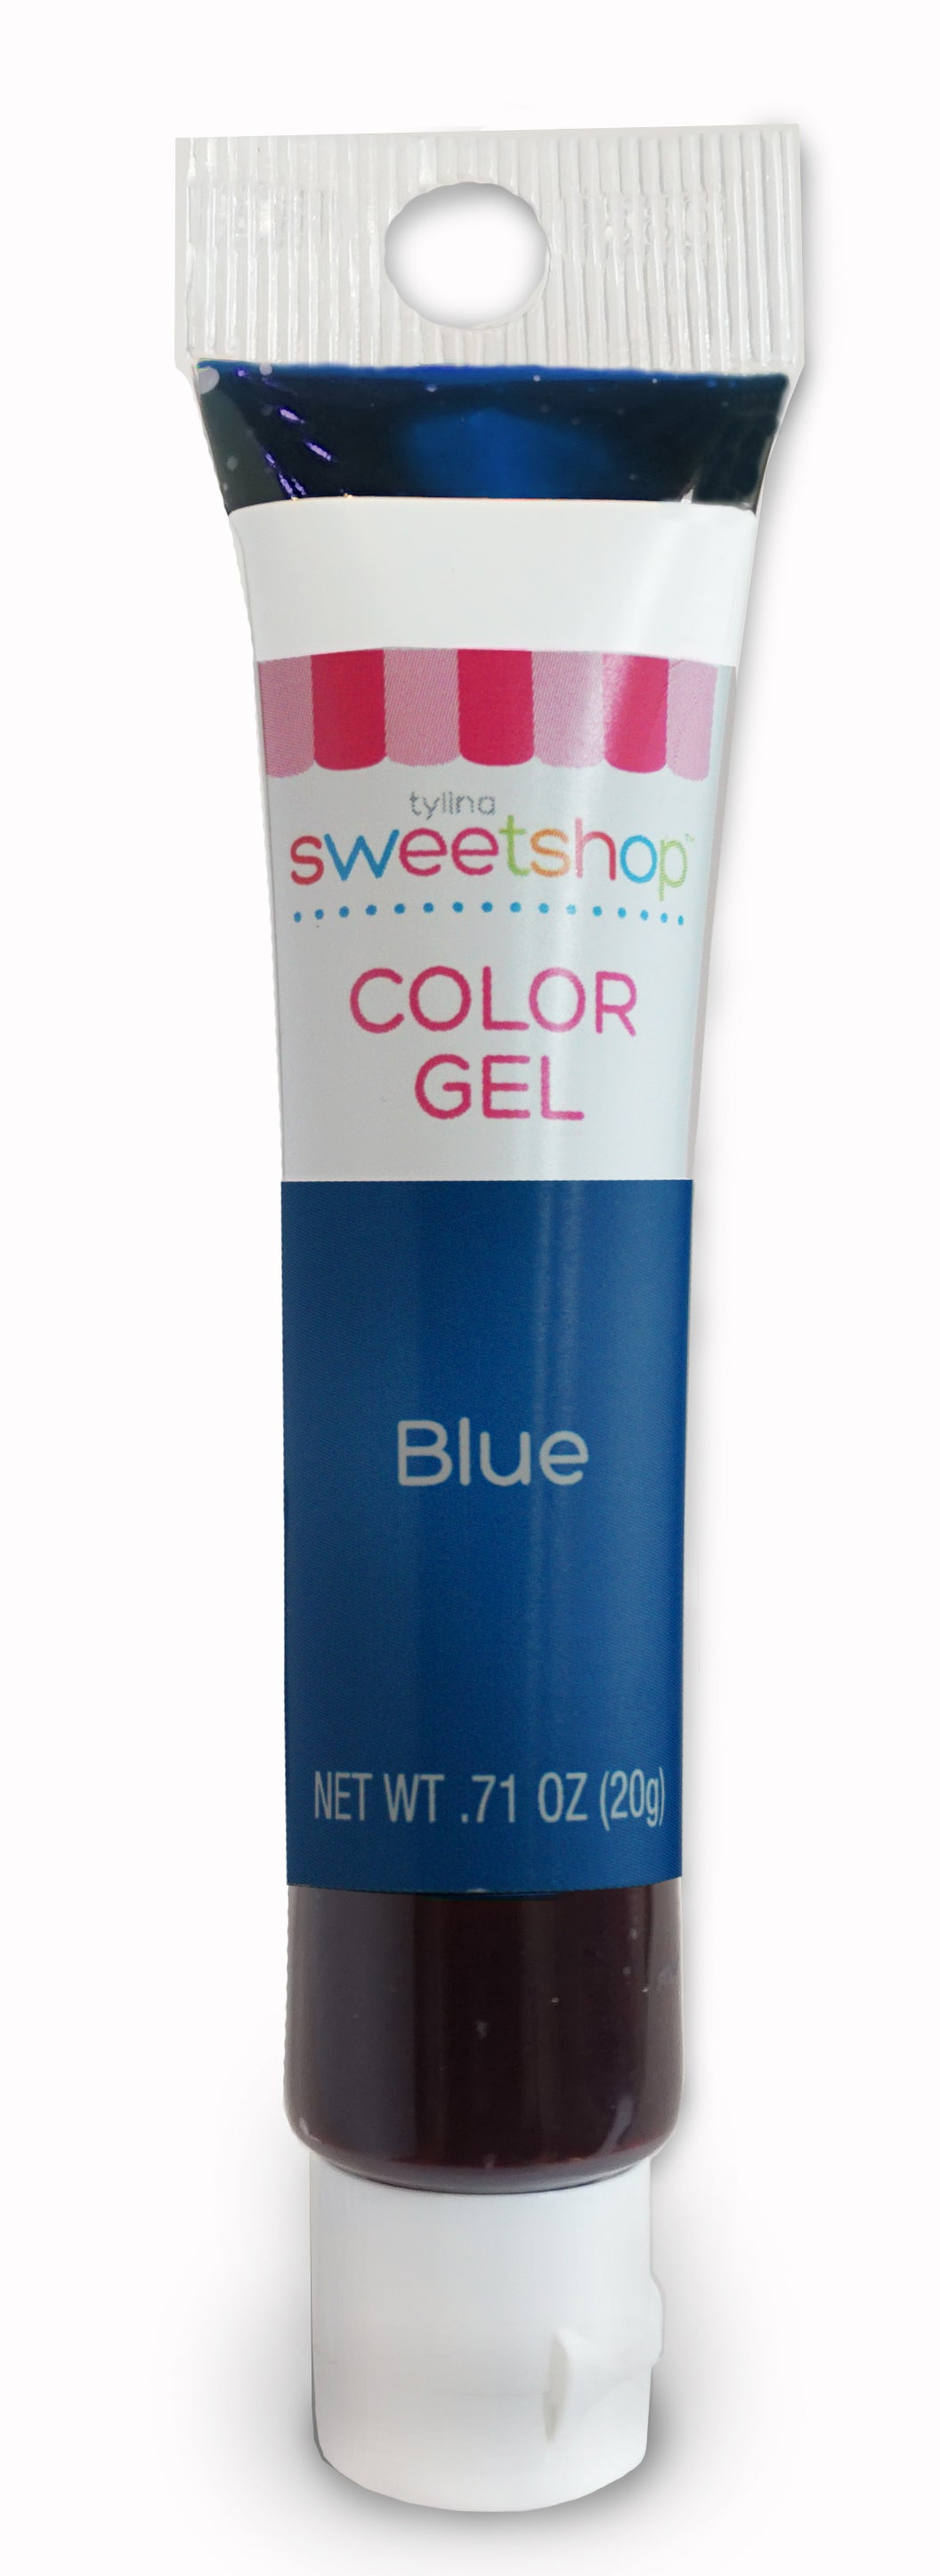 Sweetshop Blue Gel Color